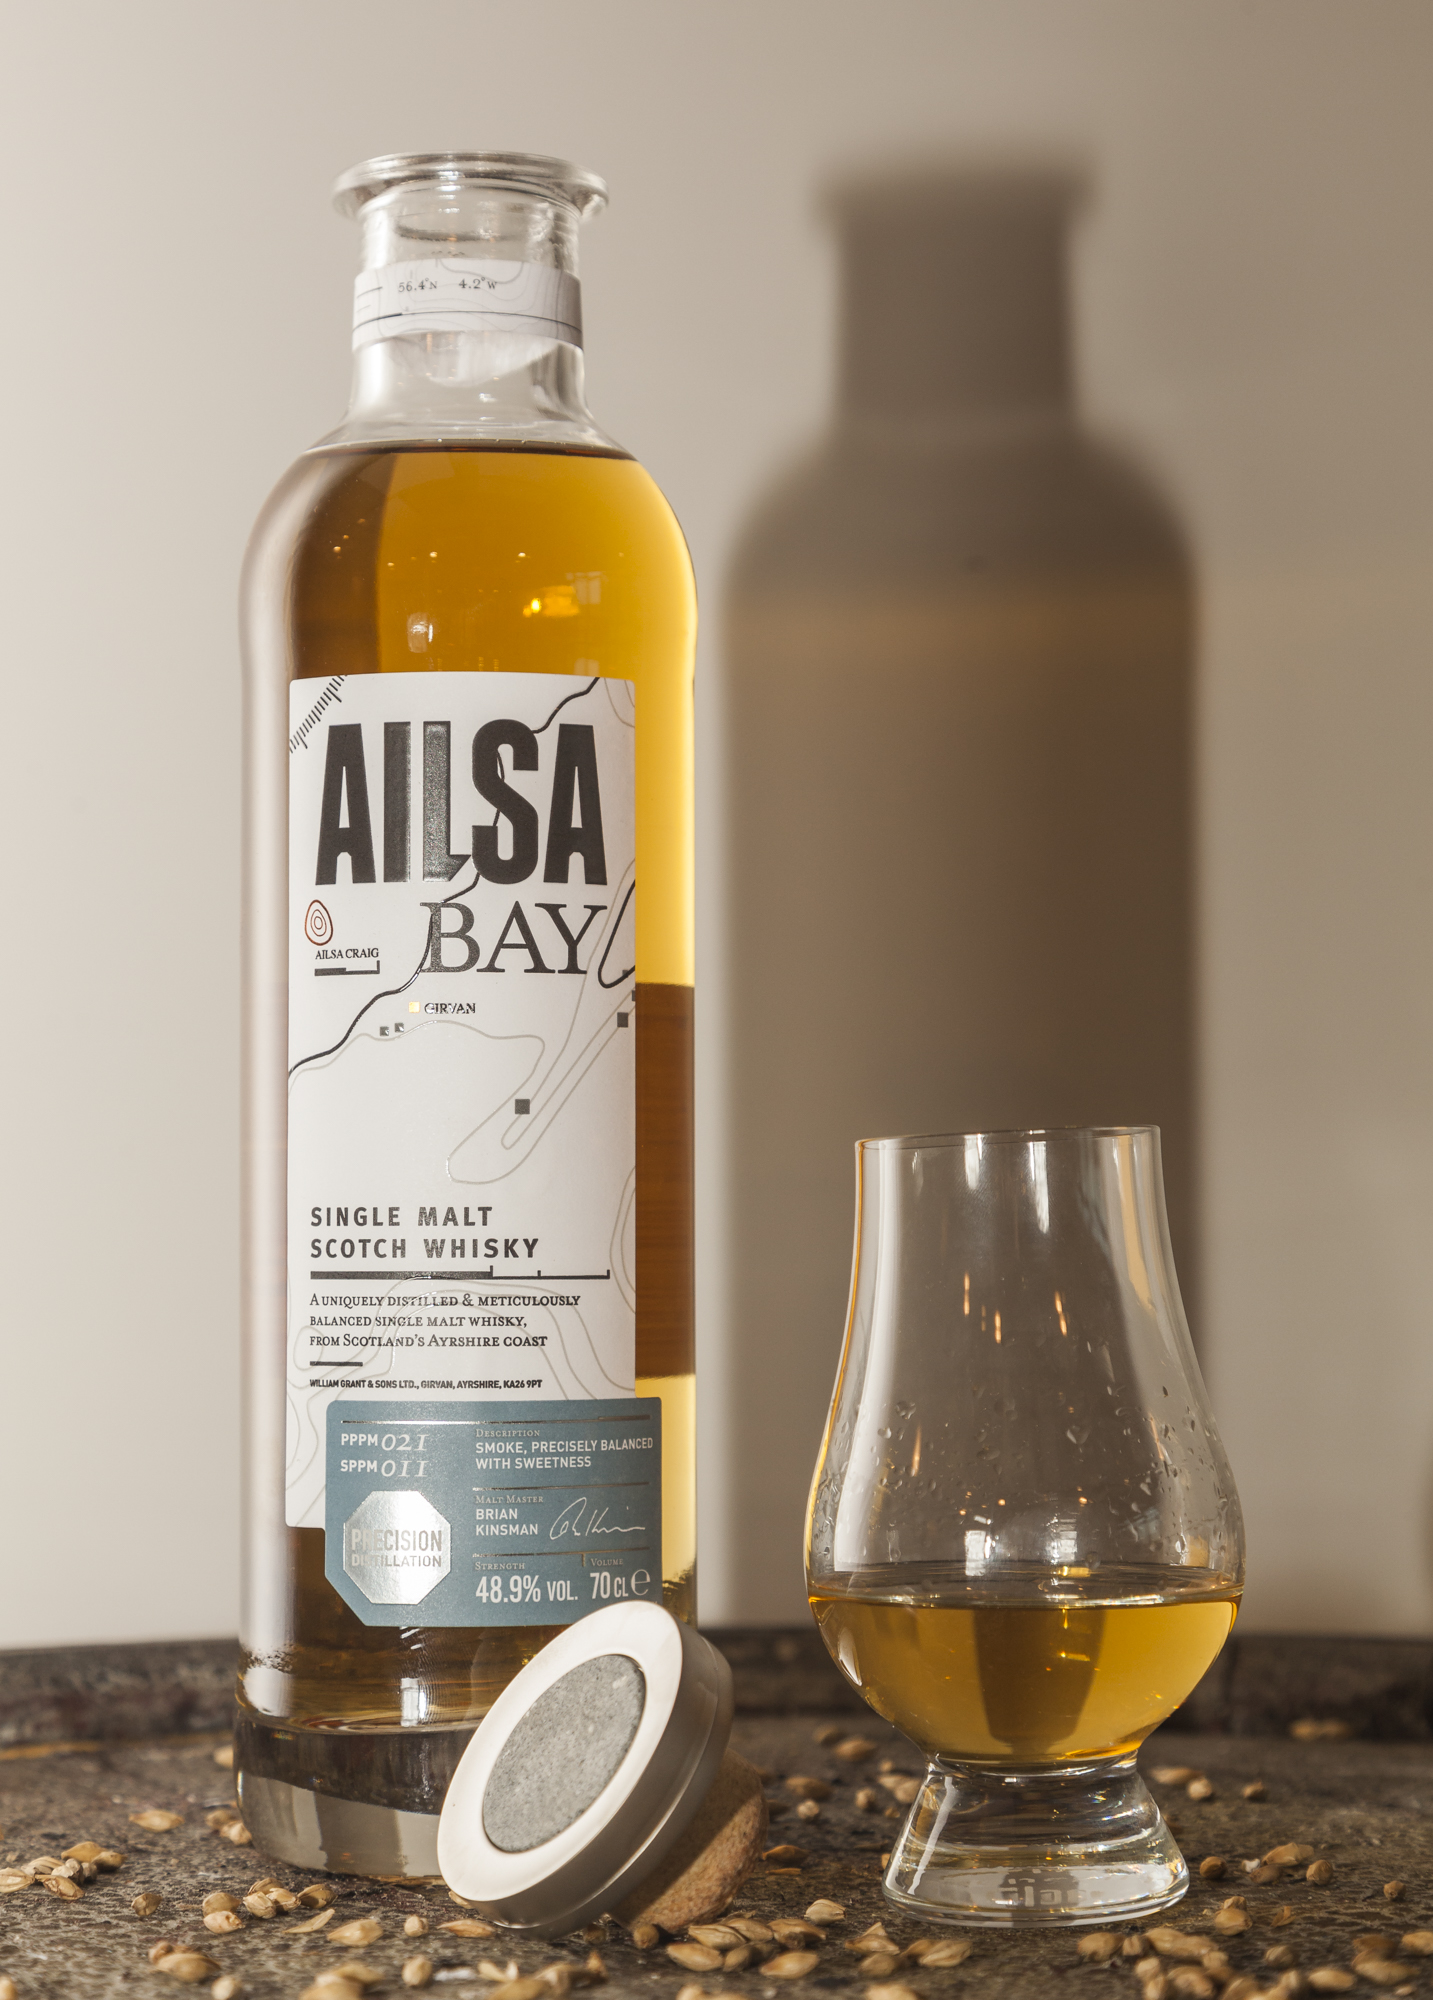 Ailsa_Bay_bottle.jpg